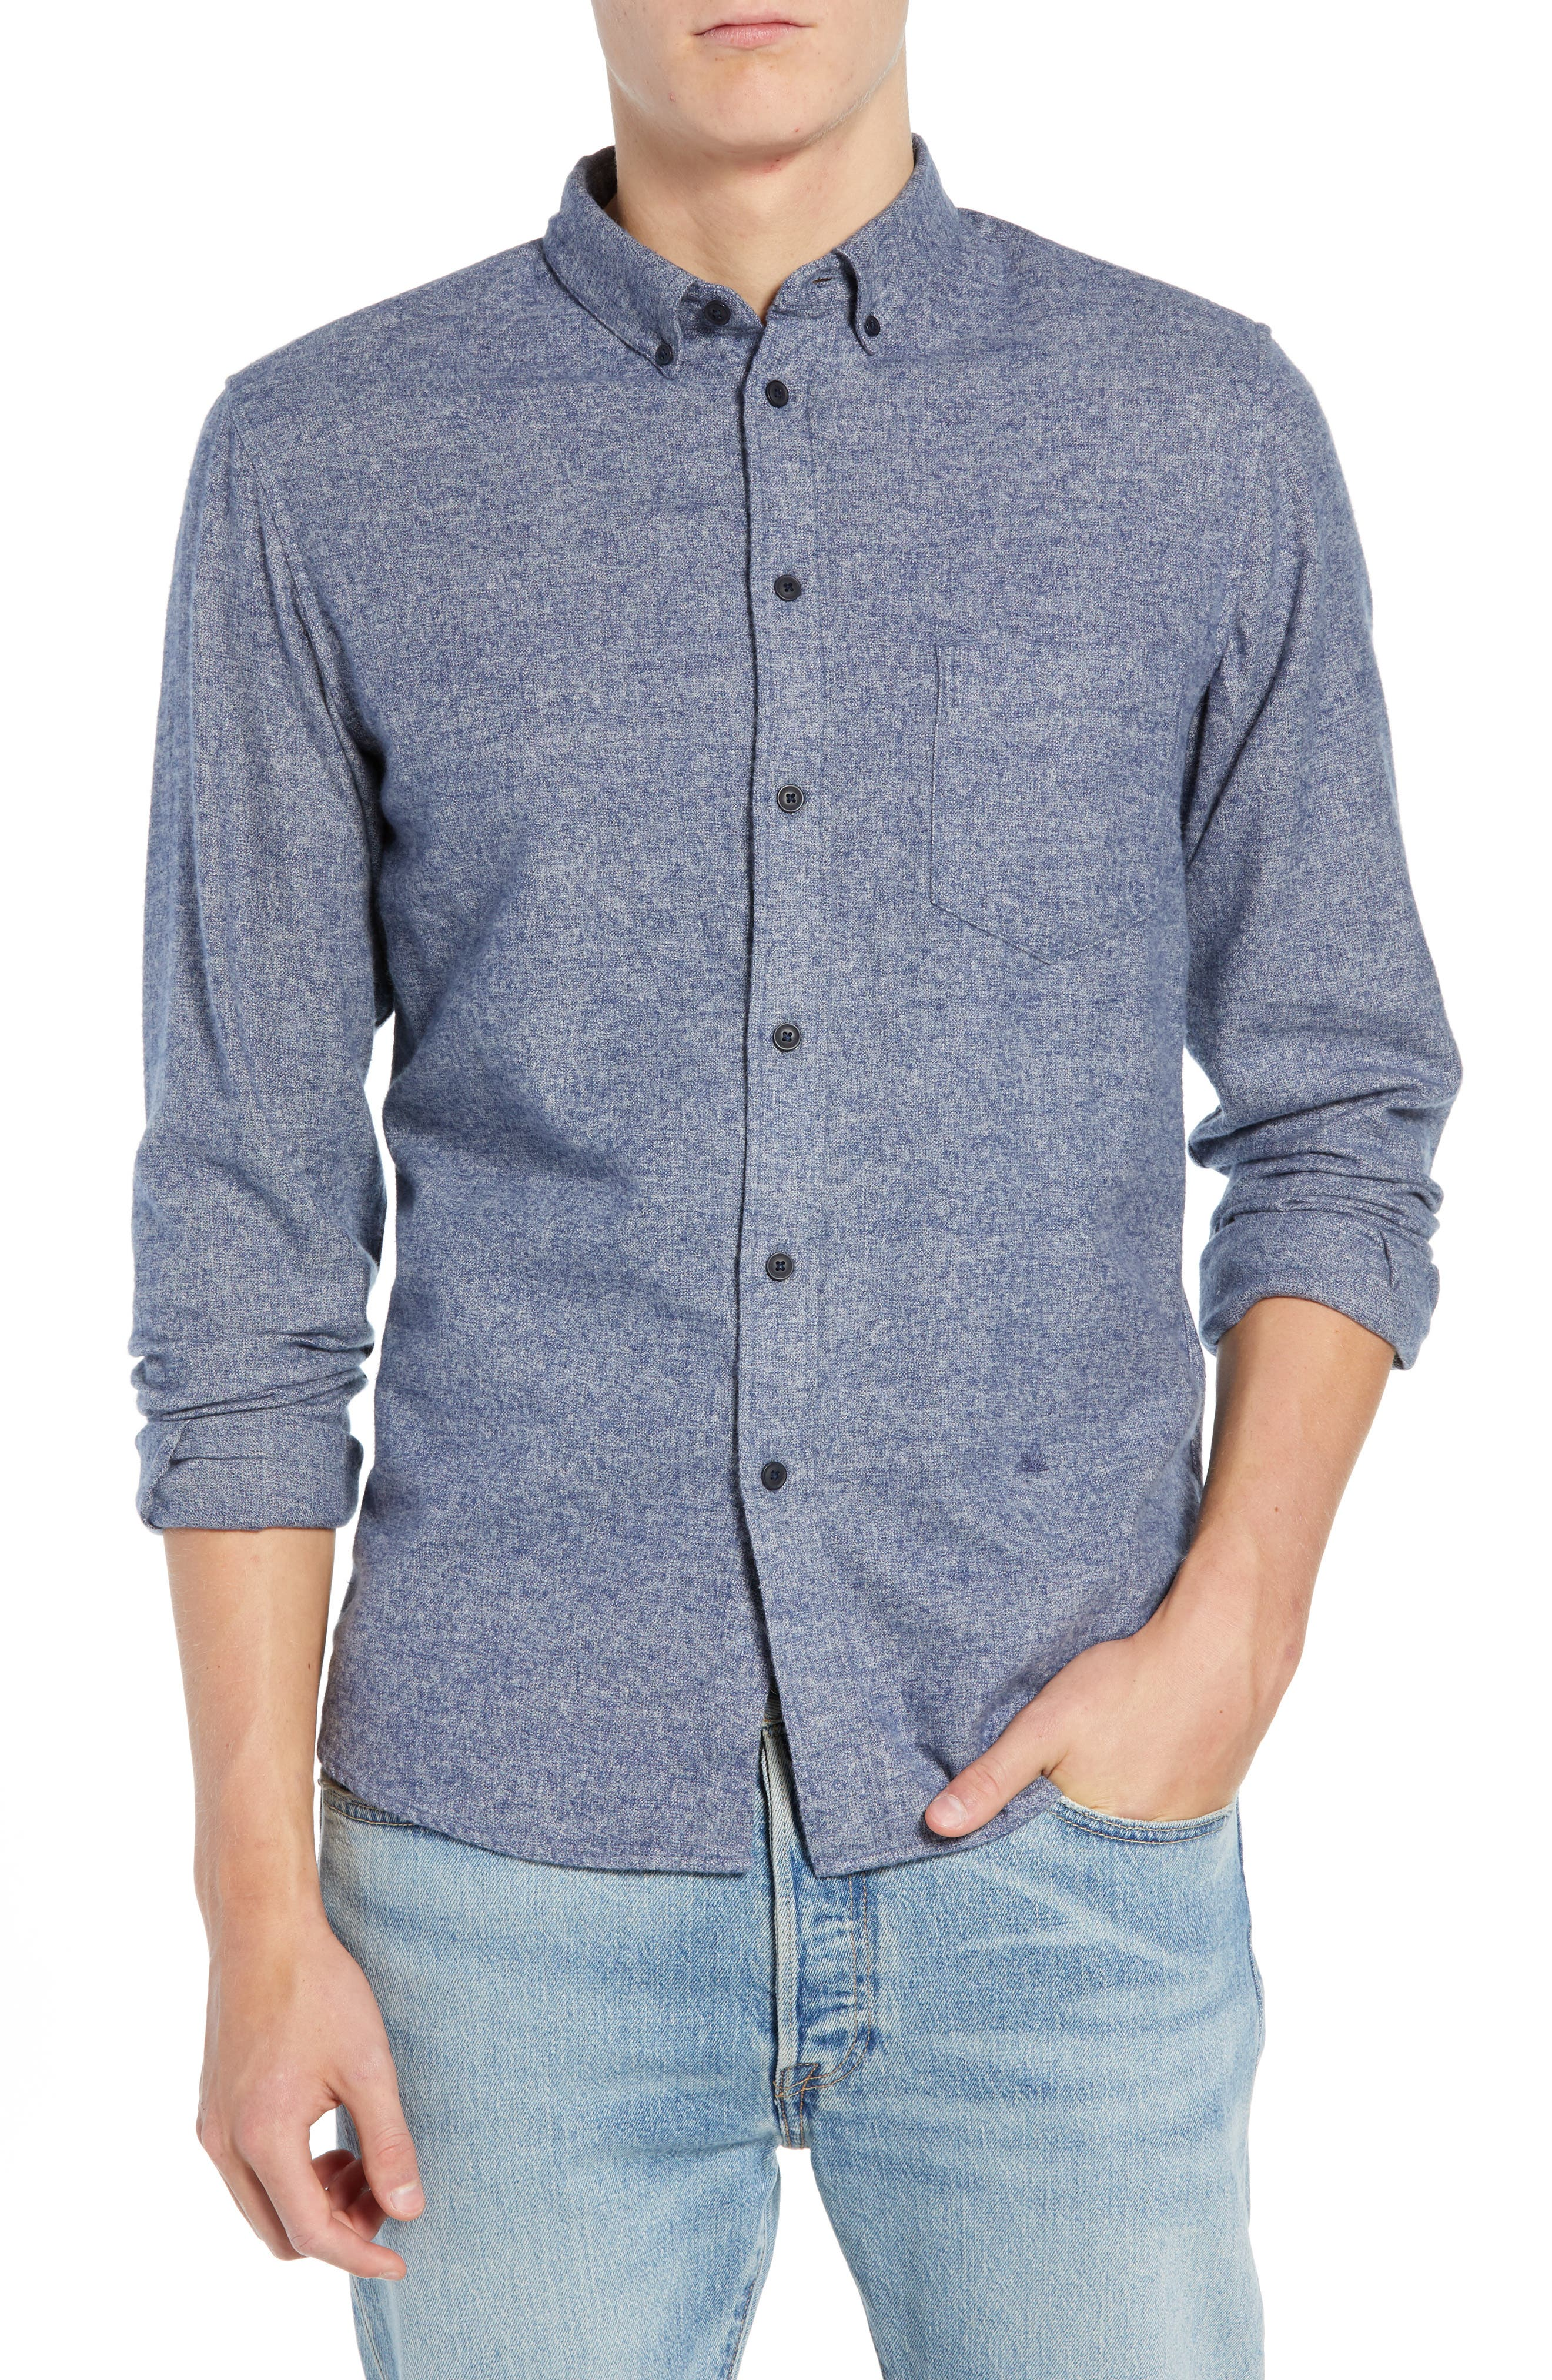 Levi's<sup>®</sup> Made & Crafted Standard Regular Fit Twill Shirt,                         Main,                         color, 400